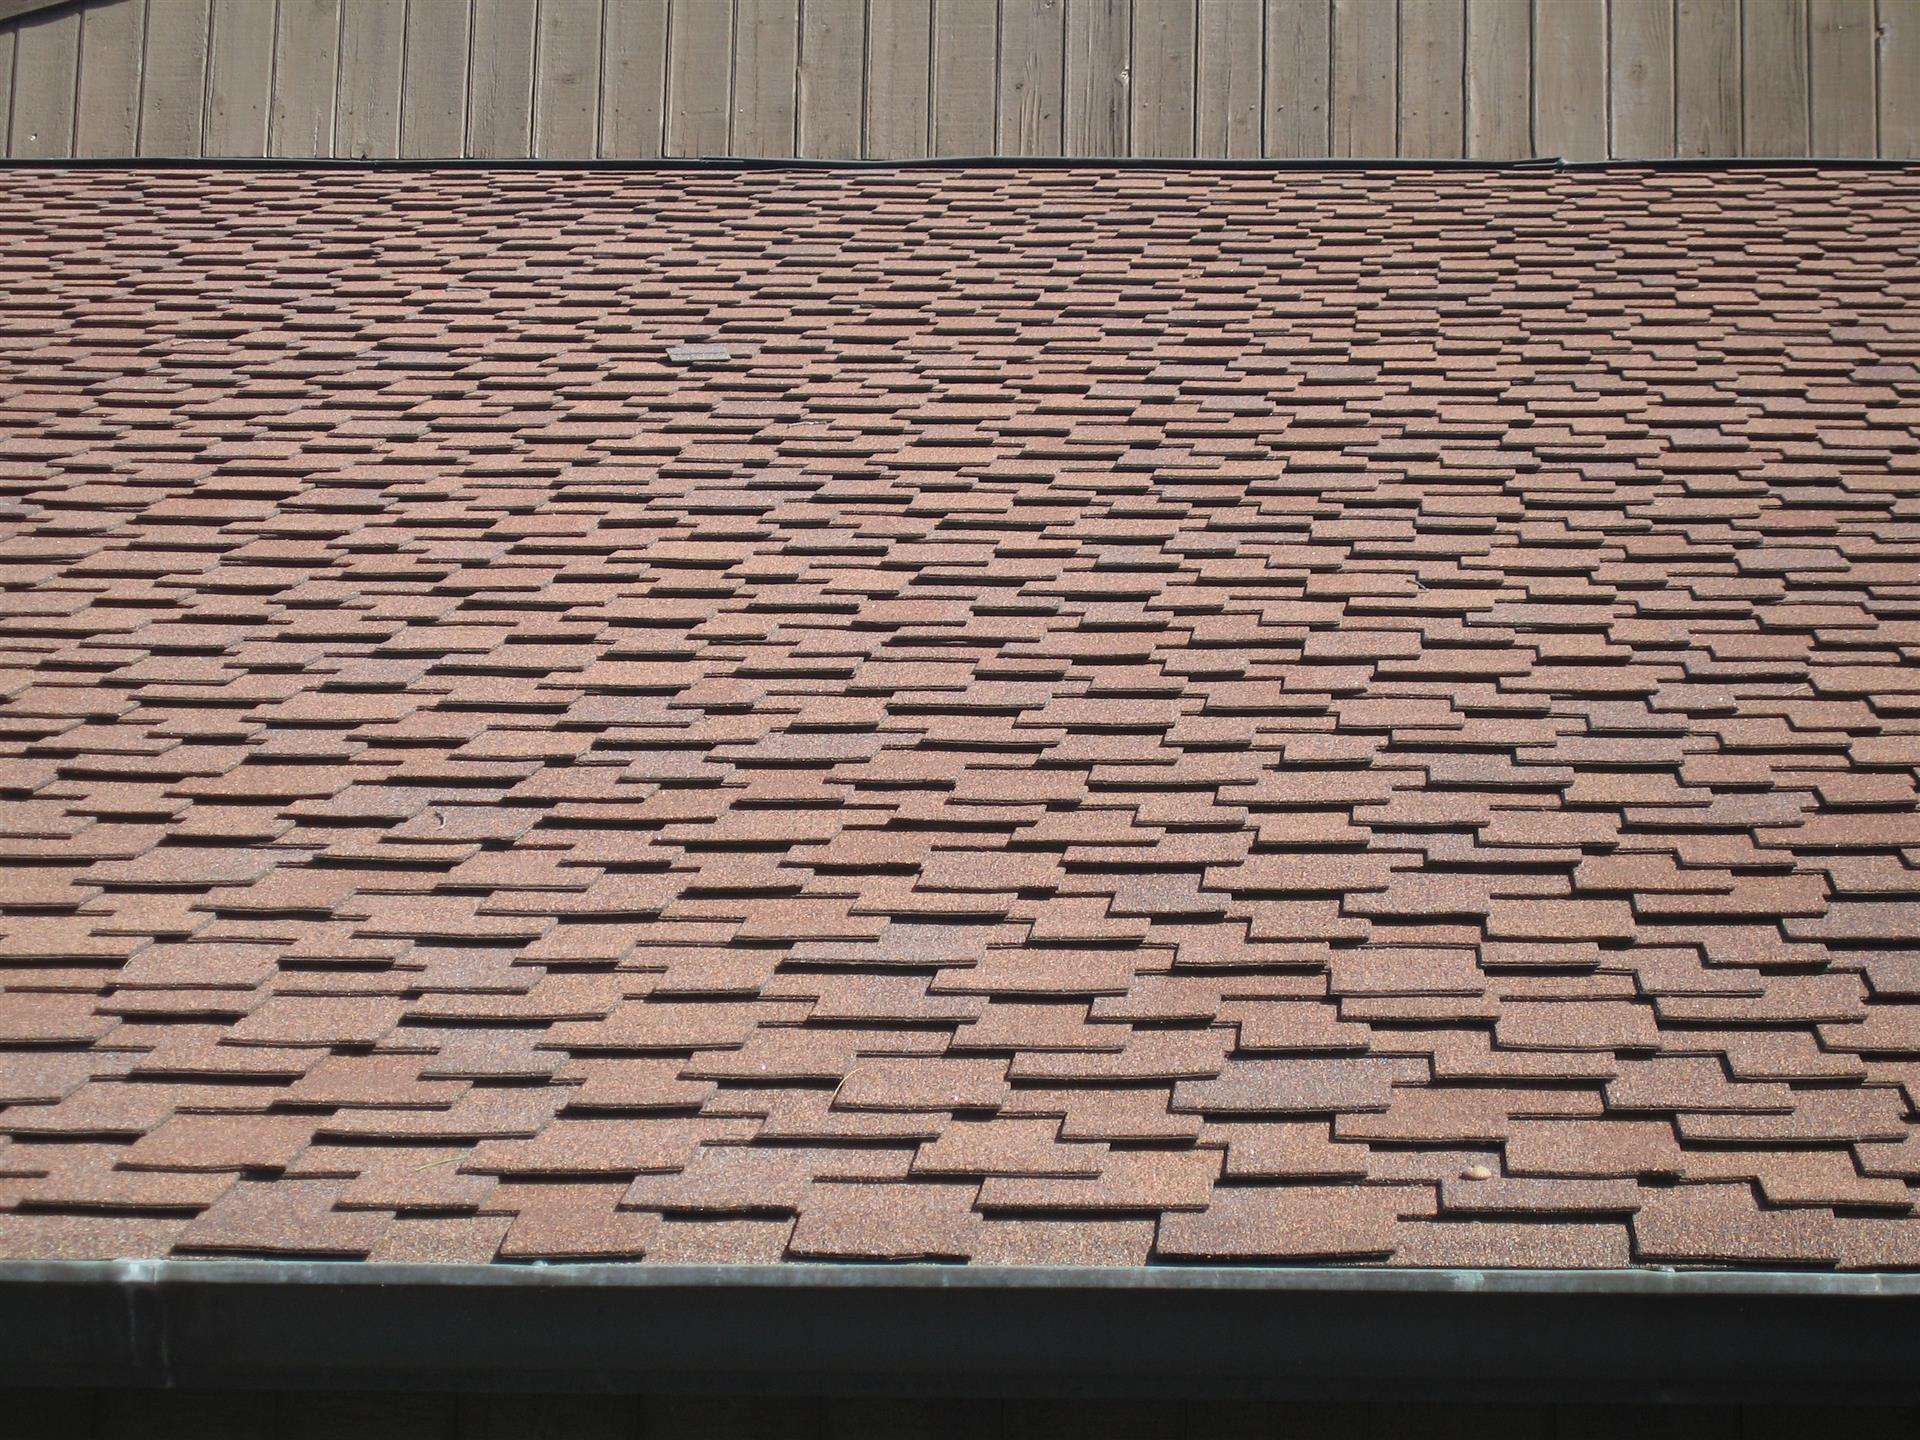 Shingle roofing in Bur Ridge, IL.